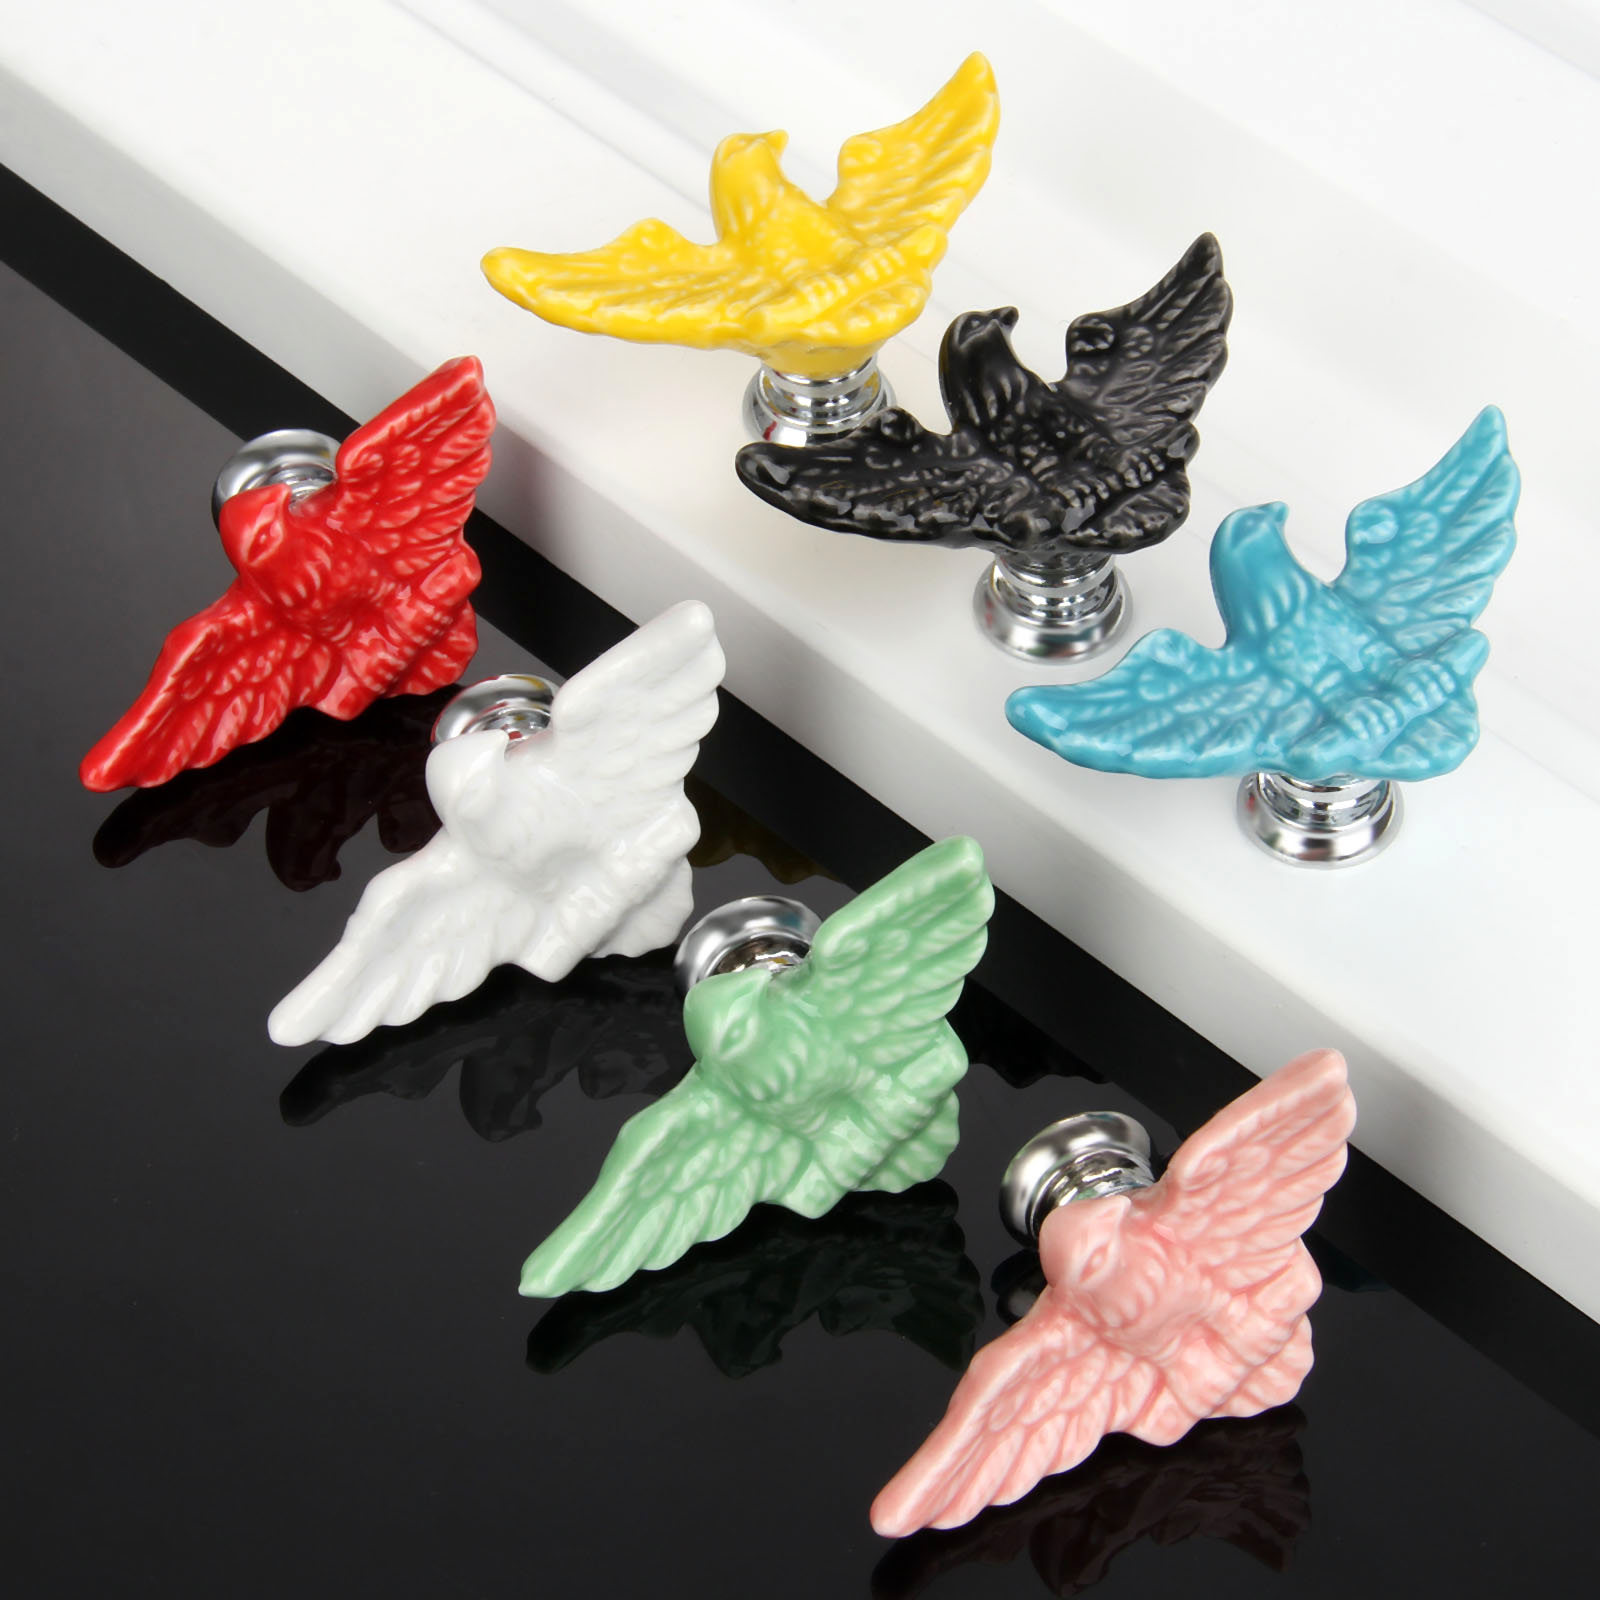 7Pcs Furniture Handles Eagle Cabinet Knobs and Handles Ceramic Door Knob Cupboard Drawer Kitchen Pull Handle for Children Room 1pc furniture handles wardrobe door pull drawer handle kitchen cupboard handle cabinet knobs and handles decorative dolphin knob